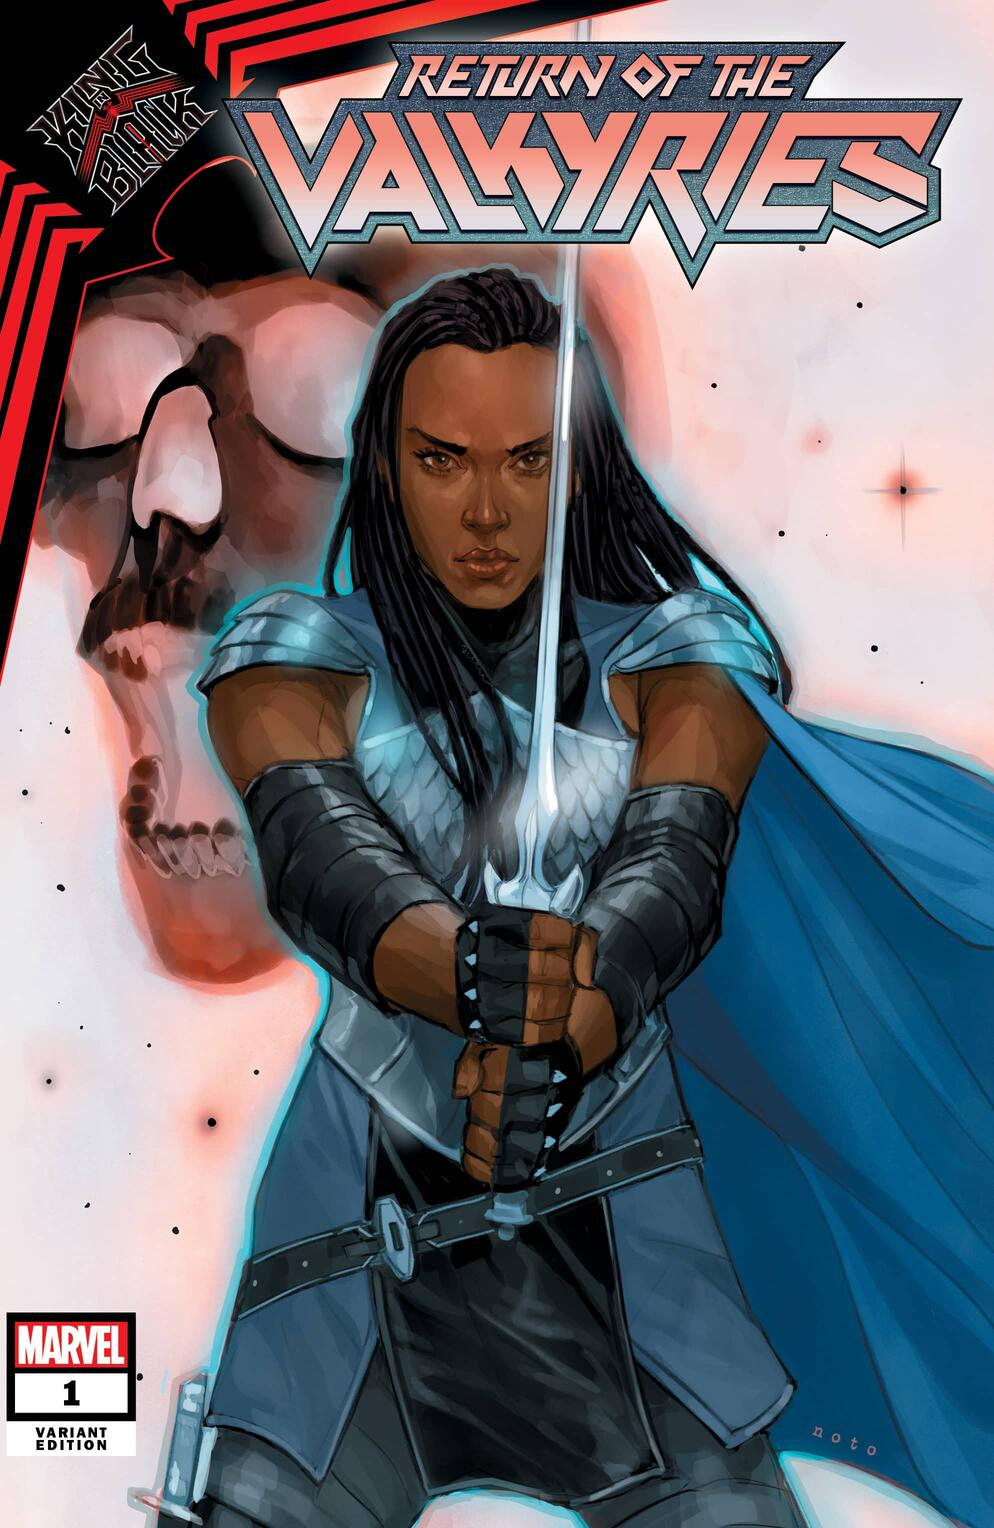 KING IN BLACK: RETURN OF THE VALKYRIES #1 variant cover by Phil Noto